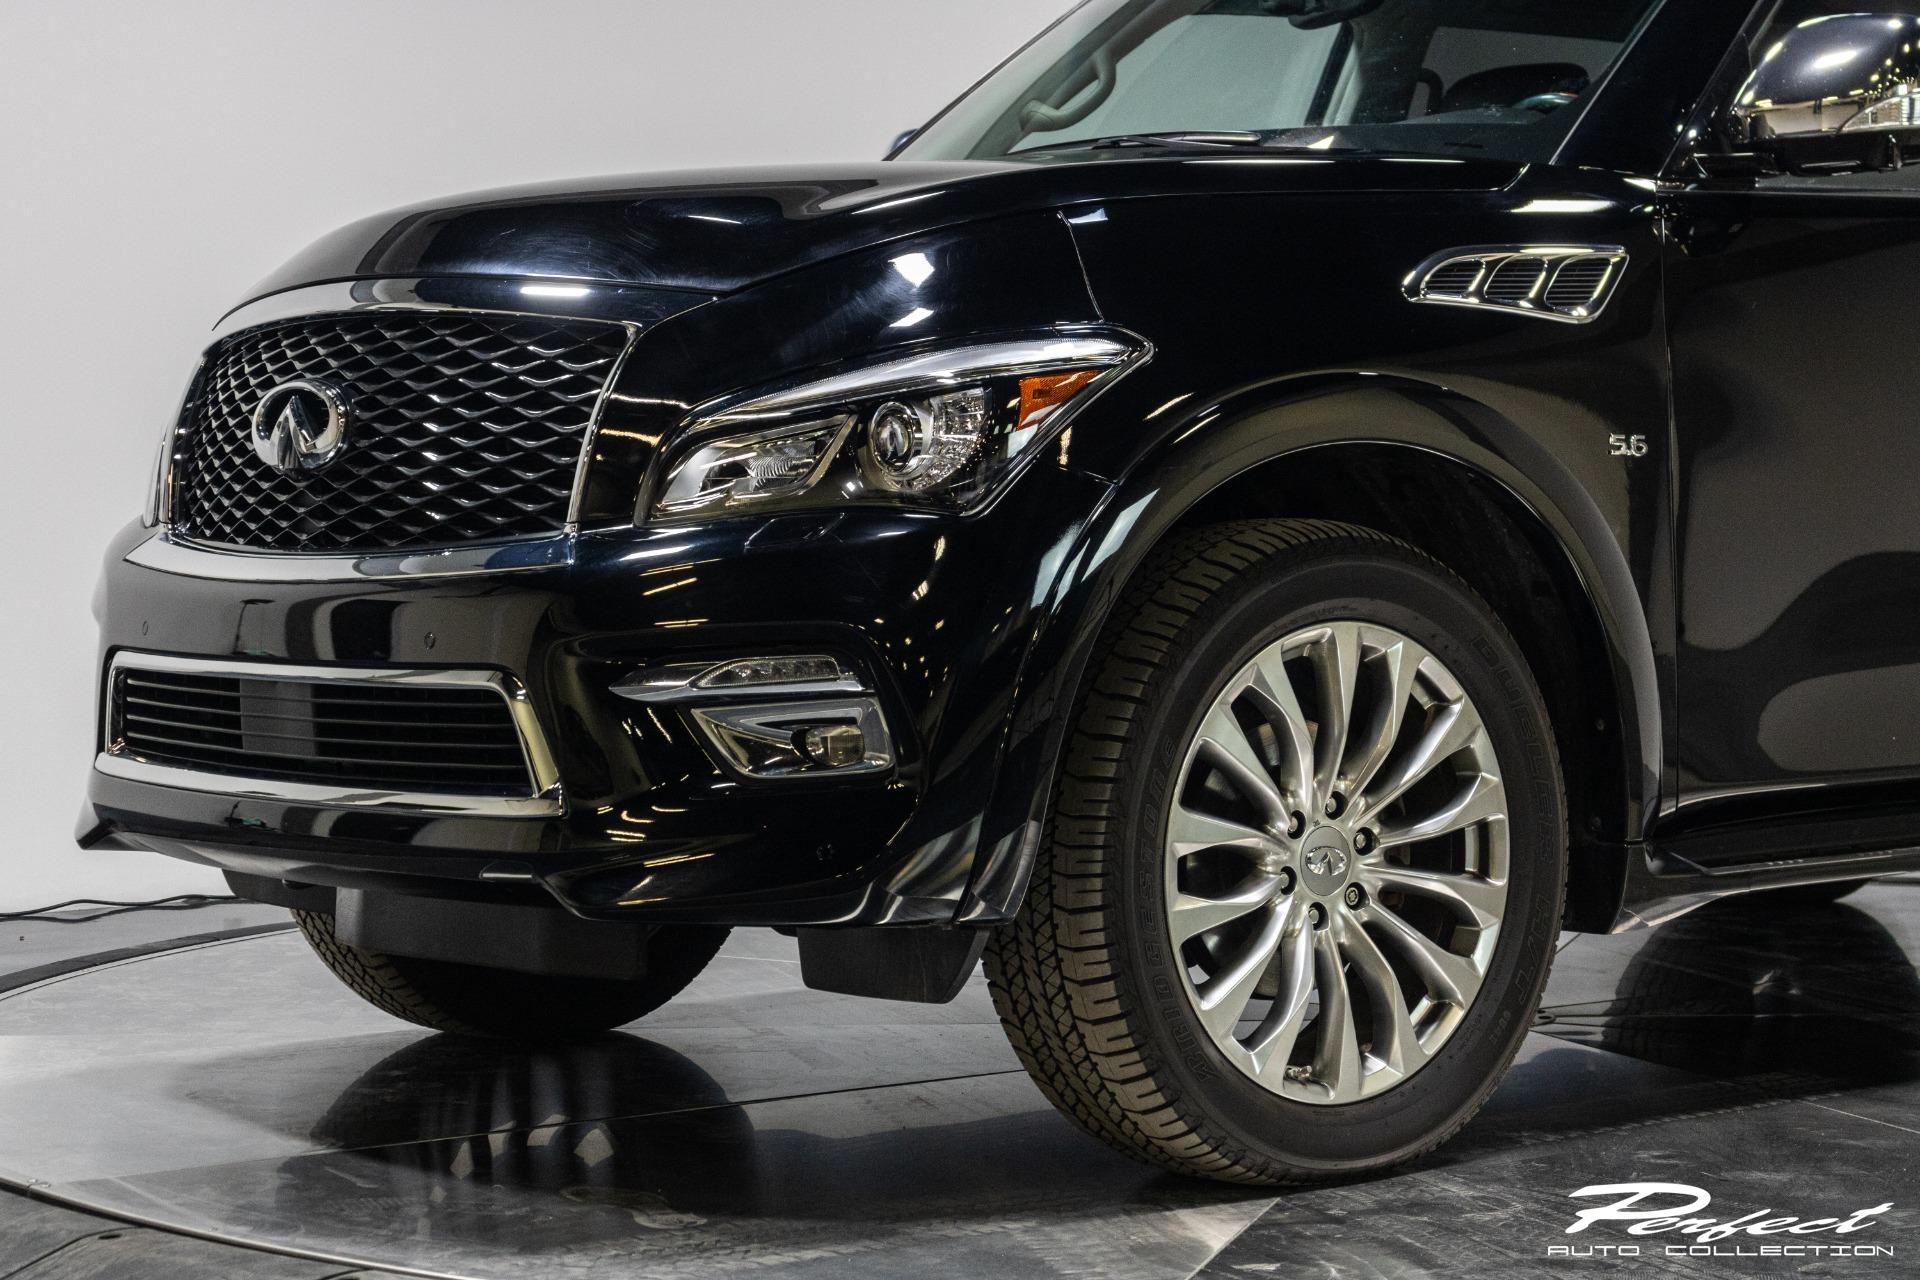 Used 2016 INFINITI QX80 for sale Sold at Perfect Auto Collection in Akron OH 44310 2